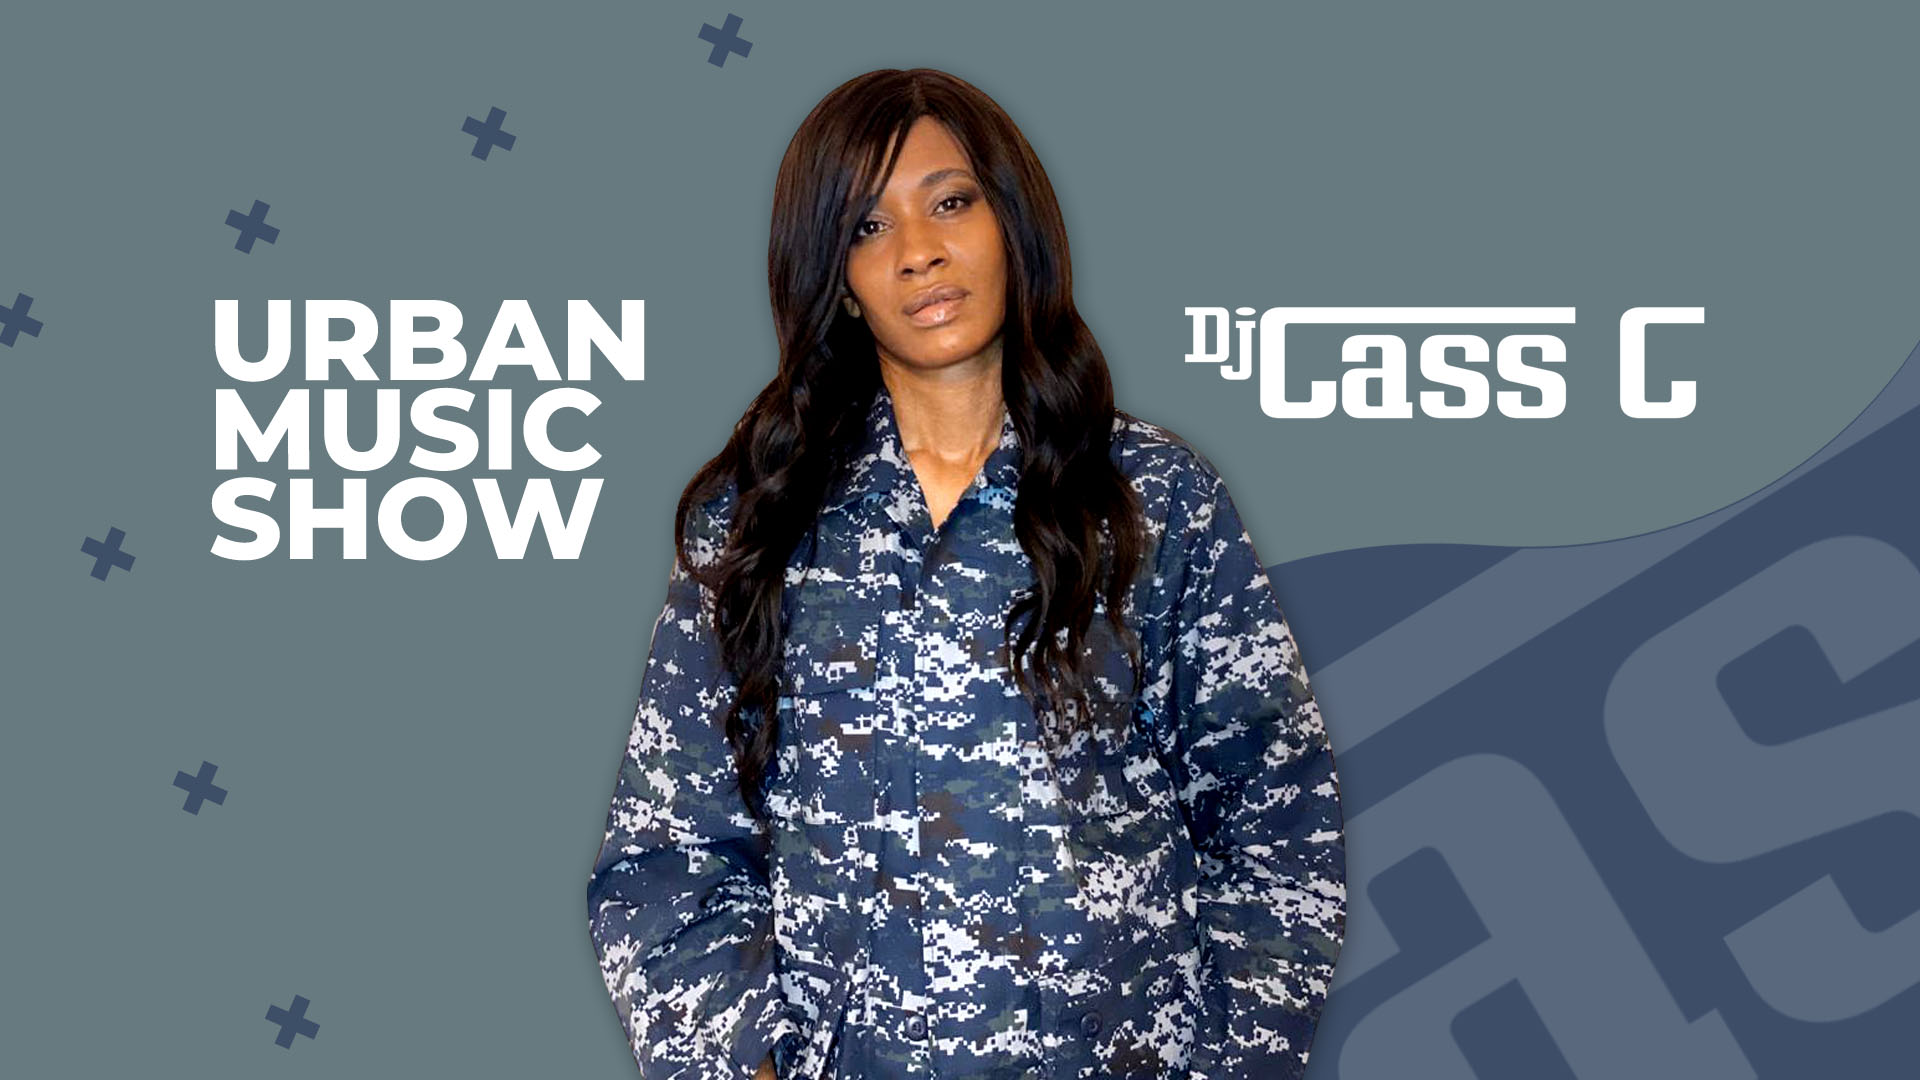 DJ CASS C – URBAN MUSIC SHOW – [29/6/20] (MUSIC FROM LECRAE, KING JIMS, TY BRASEL + MORE)